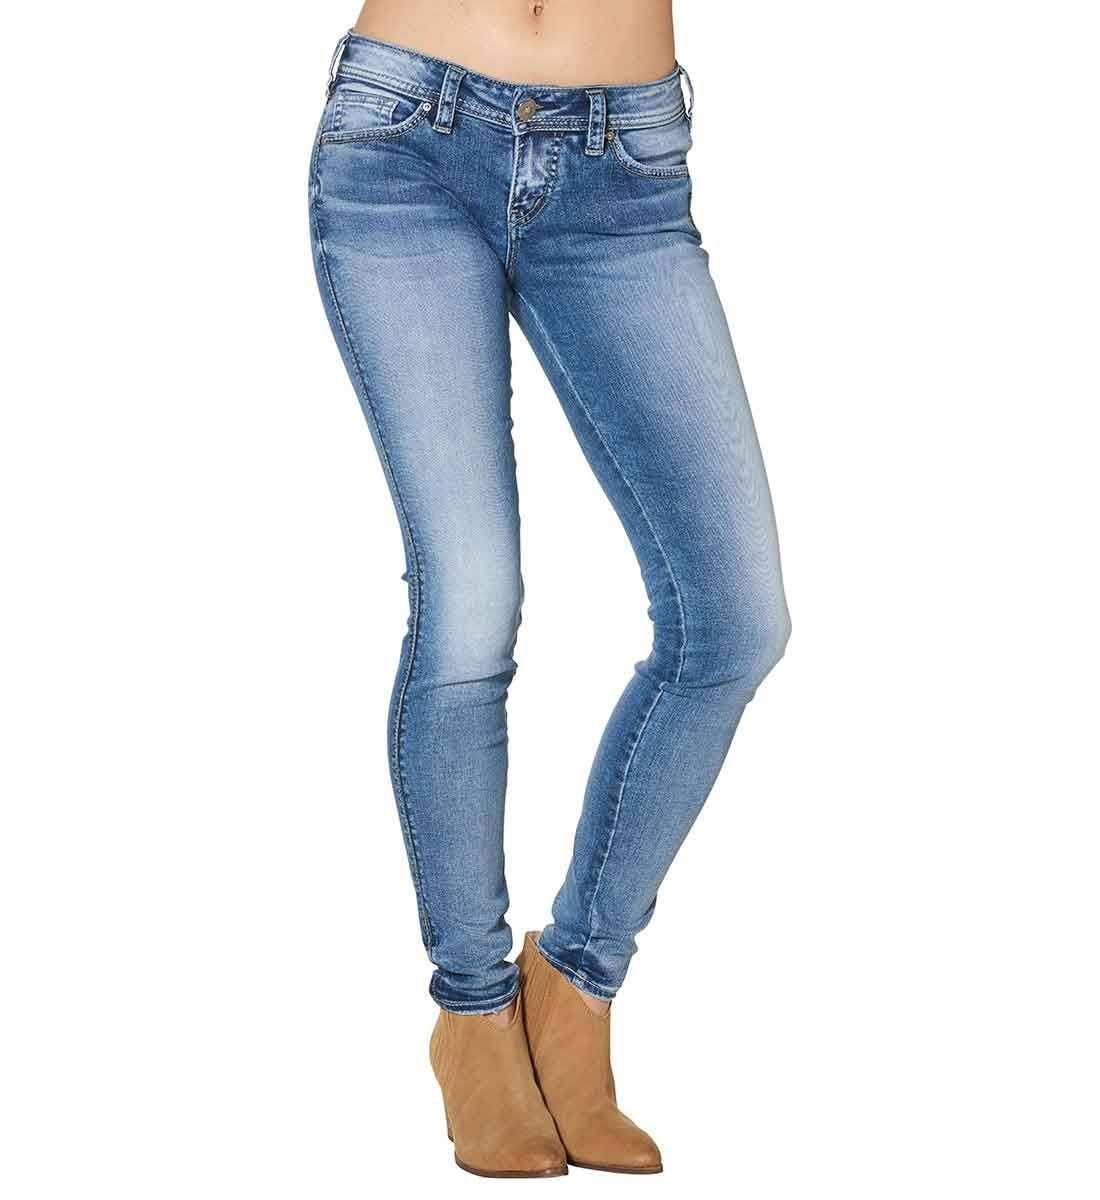 Silver Jeans Co. Aiko Mid Rise Super Skinny Jeans